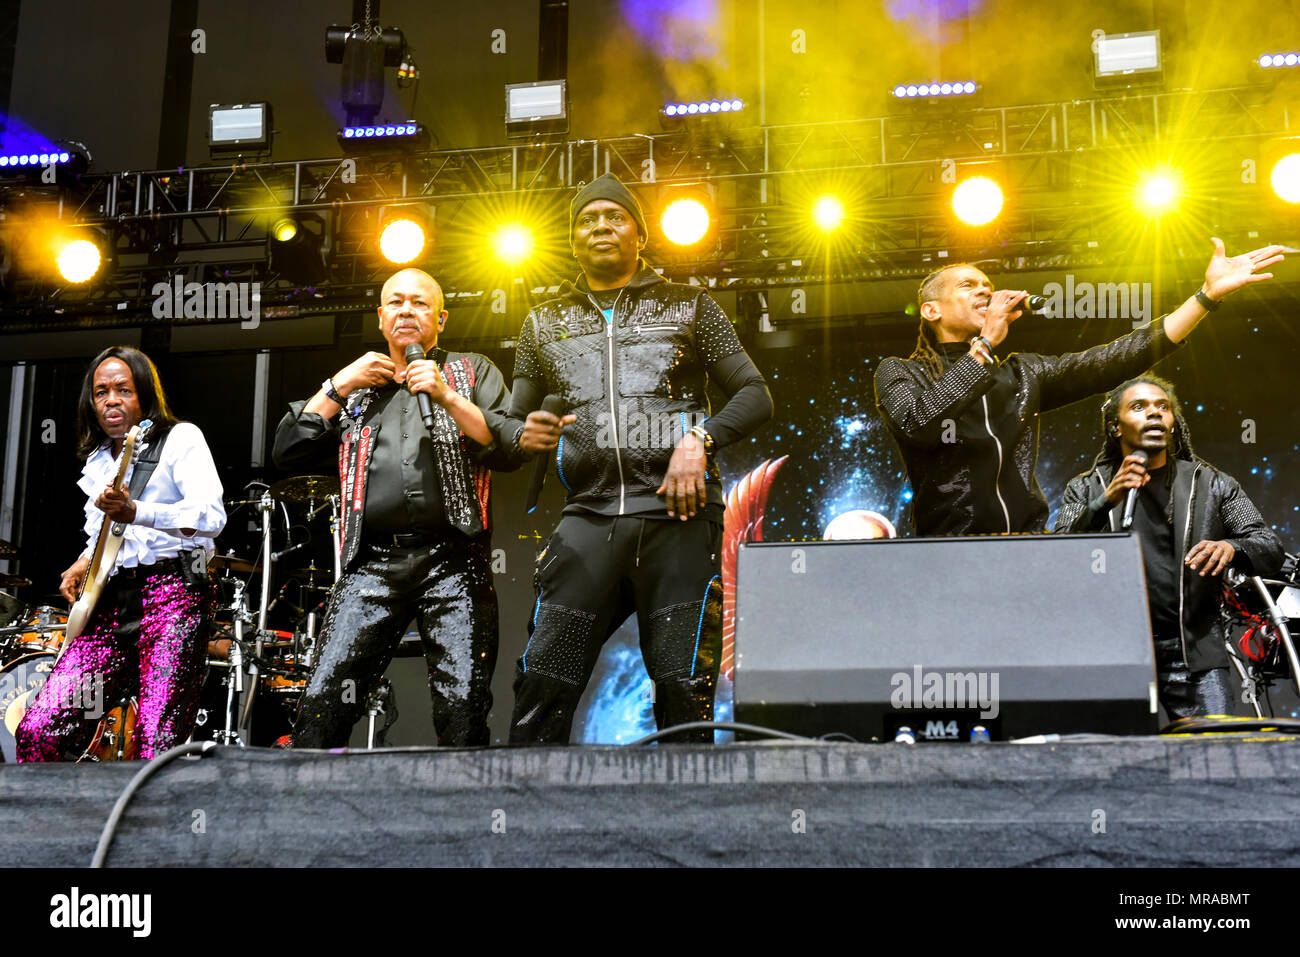 Napa Valley, California, May 25, 2018, Earth Wind and Fire on the Jam Cellars Stage at the 2018 BottleRock Festival in Napa California, Credit: Ken Howard/Alamy Live News - Stock Image